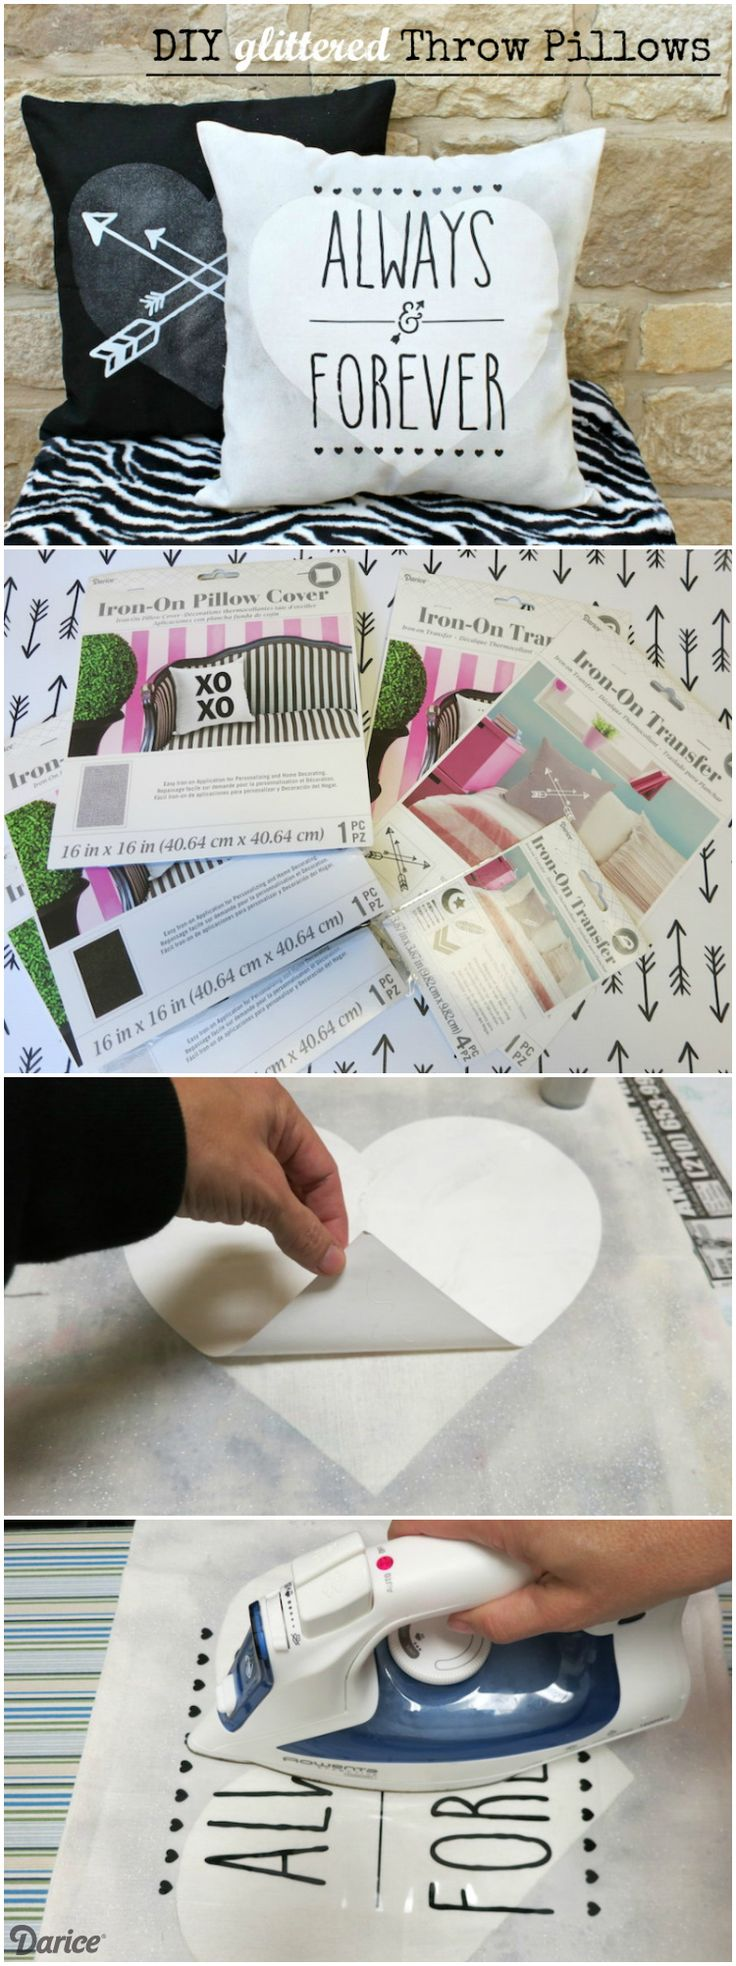 Diy Throw Pillows With Glittered Iron On Transfers Darice